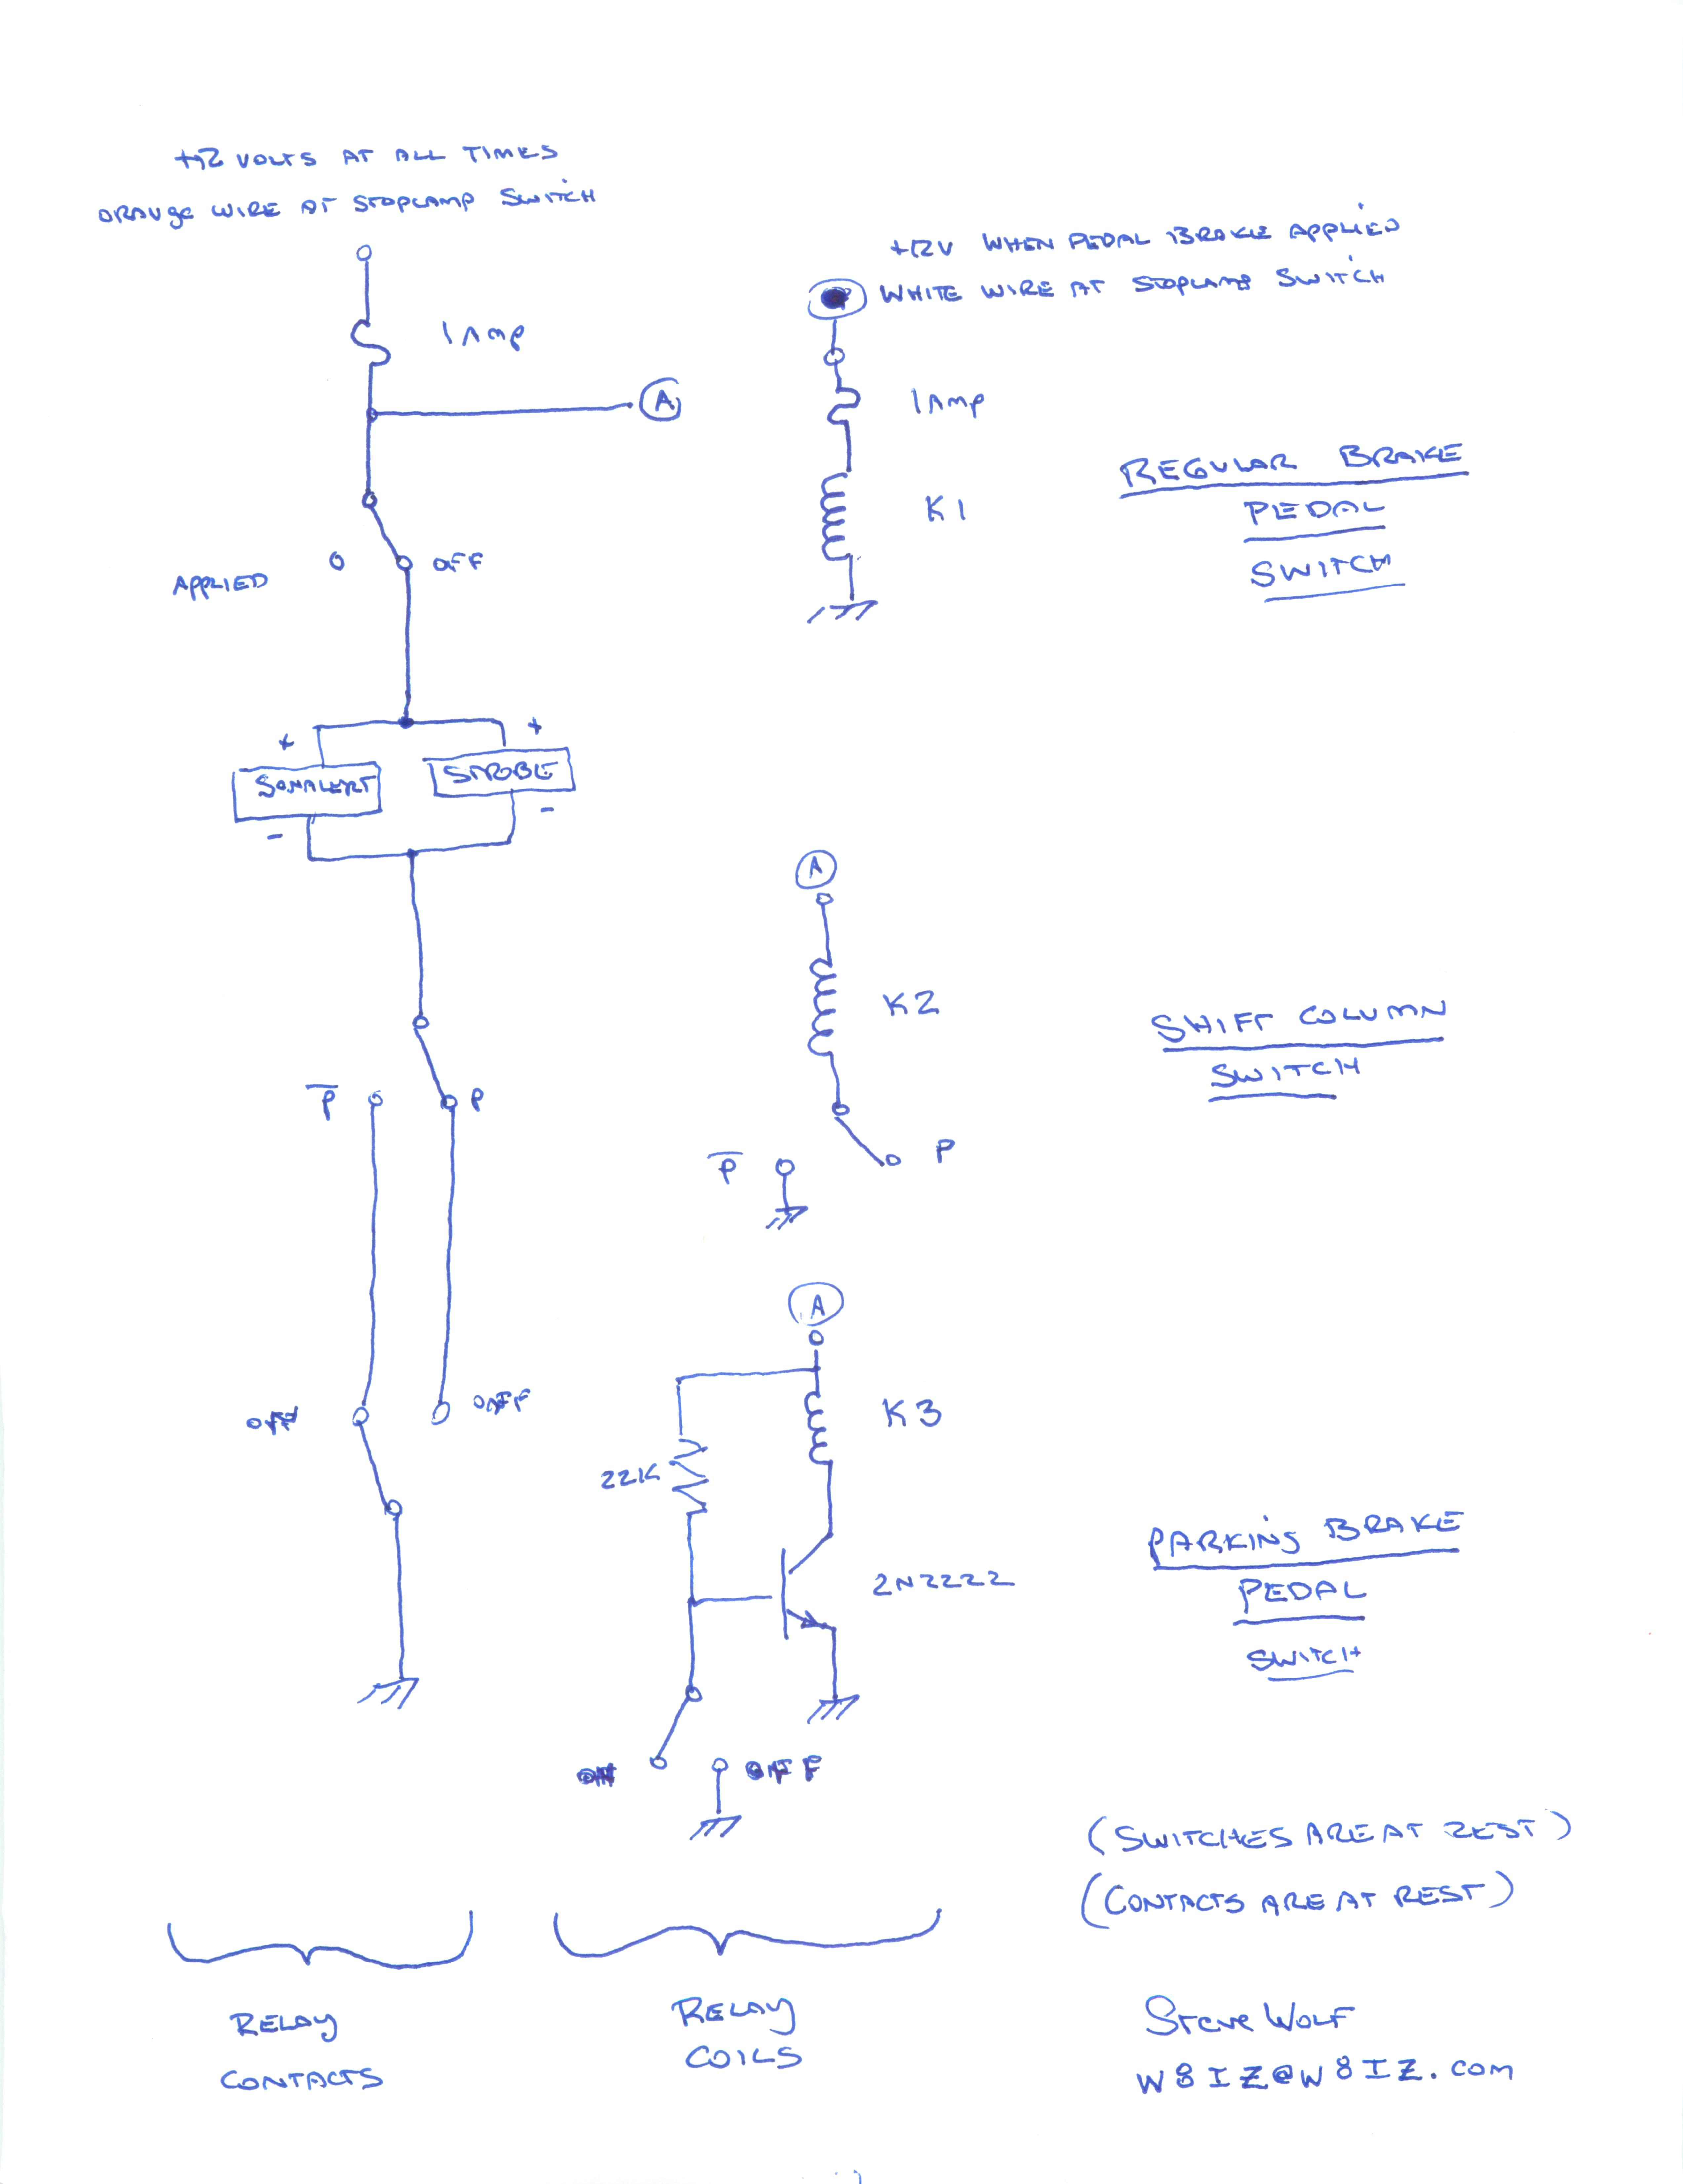 1988 Pace Arrow Electrical Box Wiring Diagram